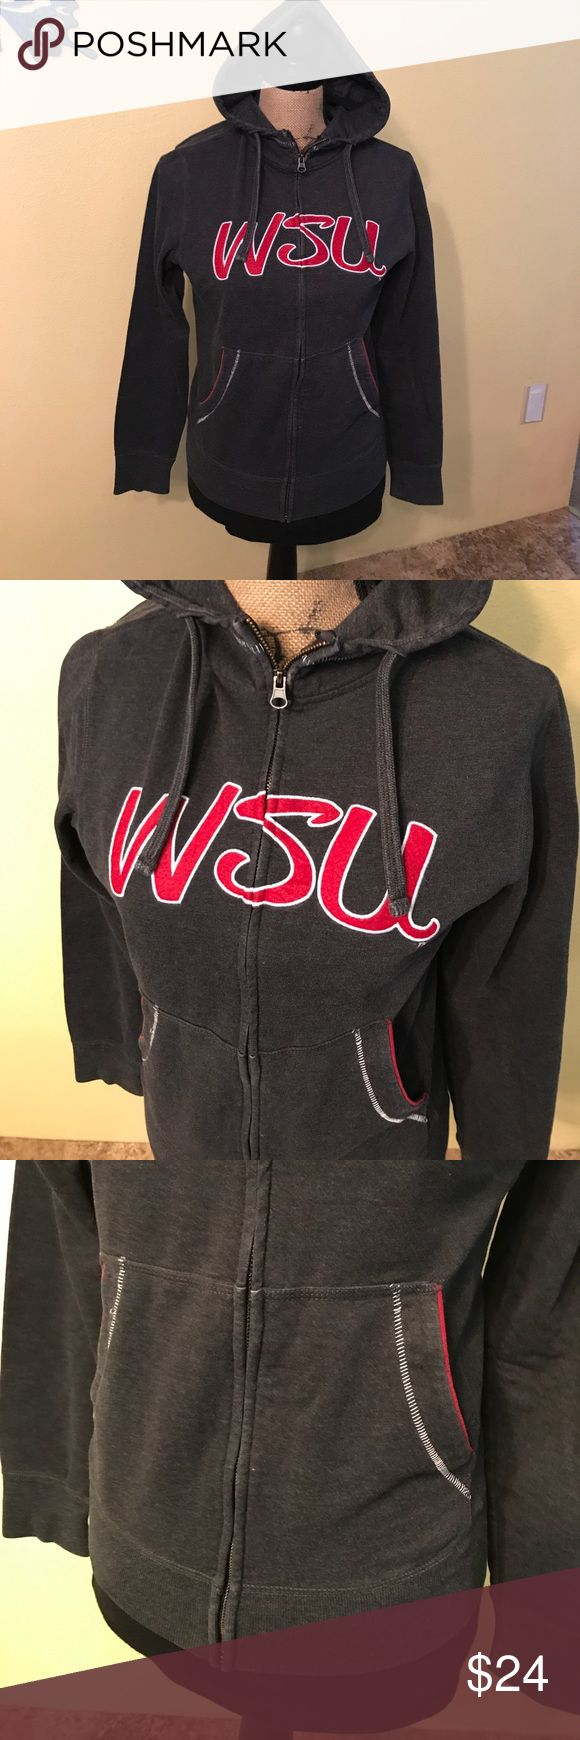 Washington State University hoodie Small Great preowned condition. Love this top with the stitching details on the pockets and hood. I wish it still fit me or else I'd keep it. Tops Sweatshirts & Hoodies